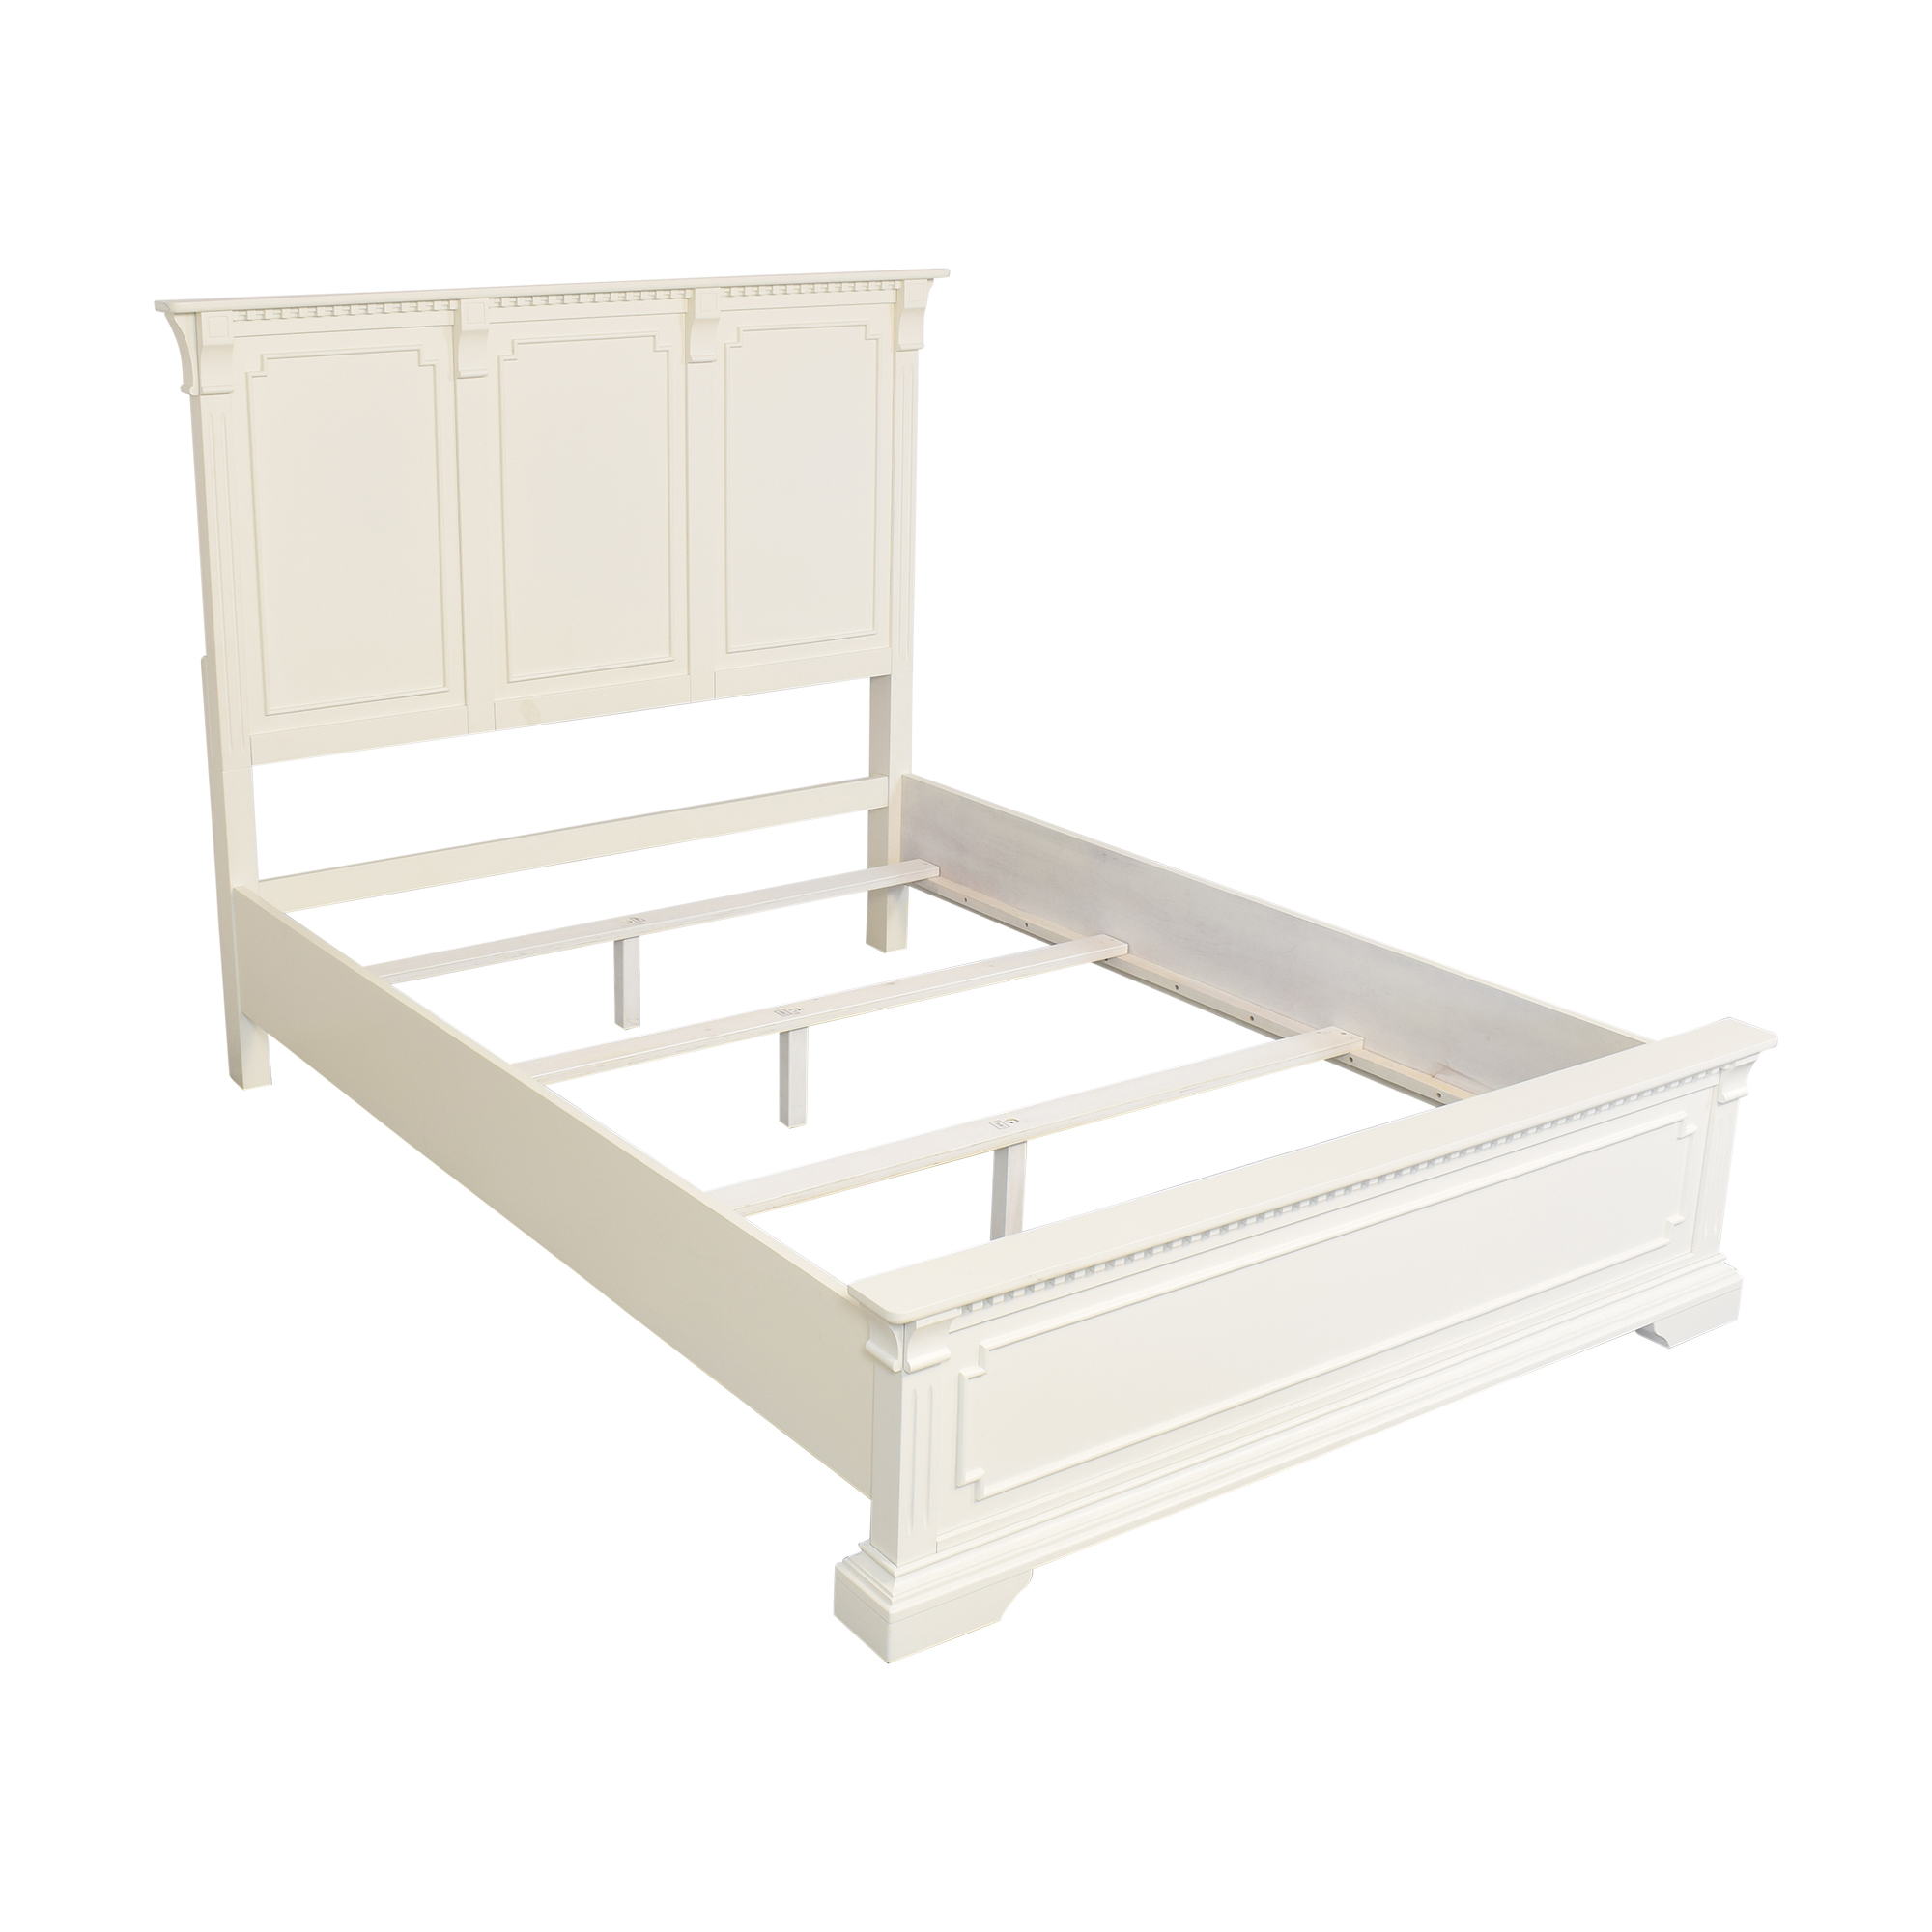 shop Raymour & Flanigan Angelina Queen Panel Bed Raymour & Flanigan Beds